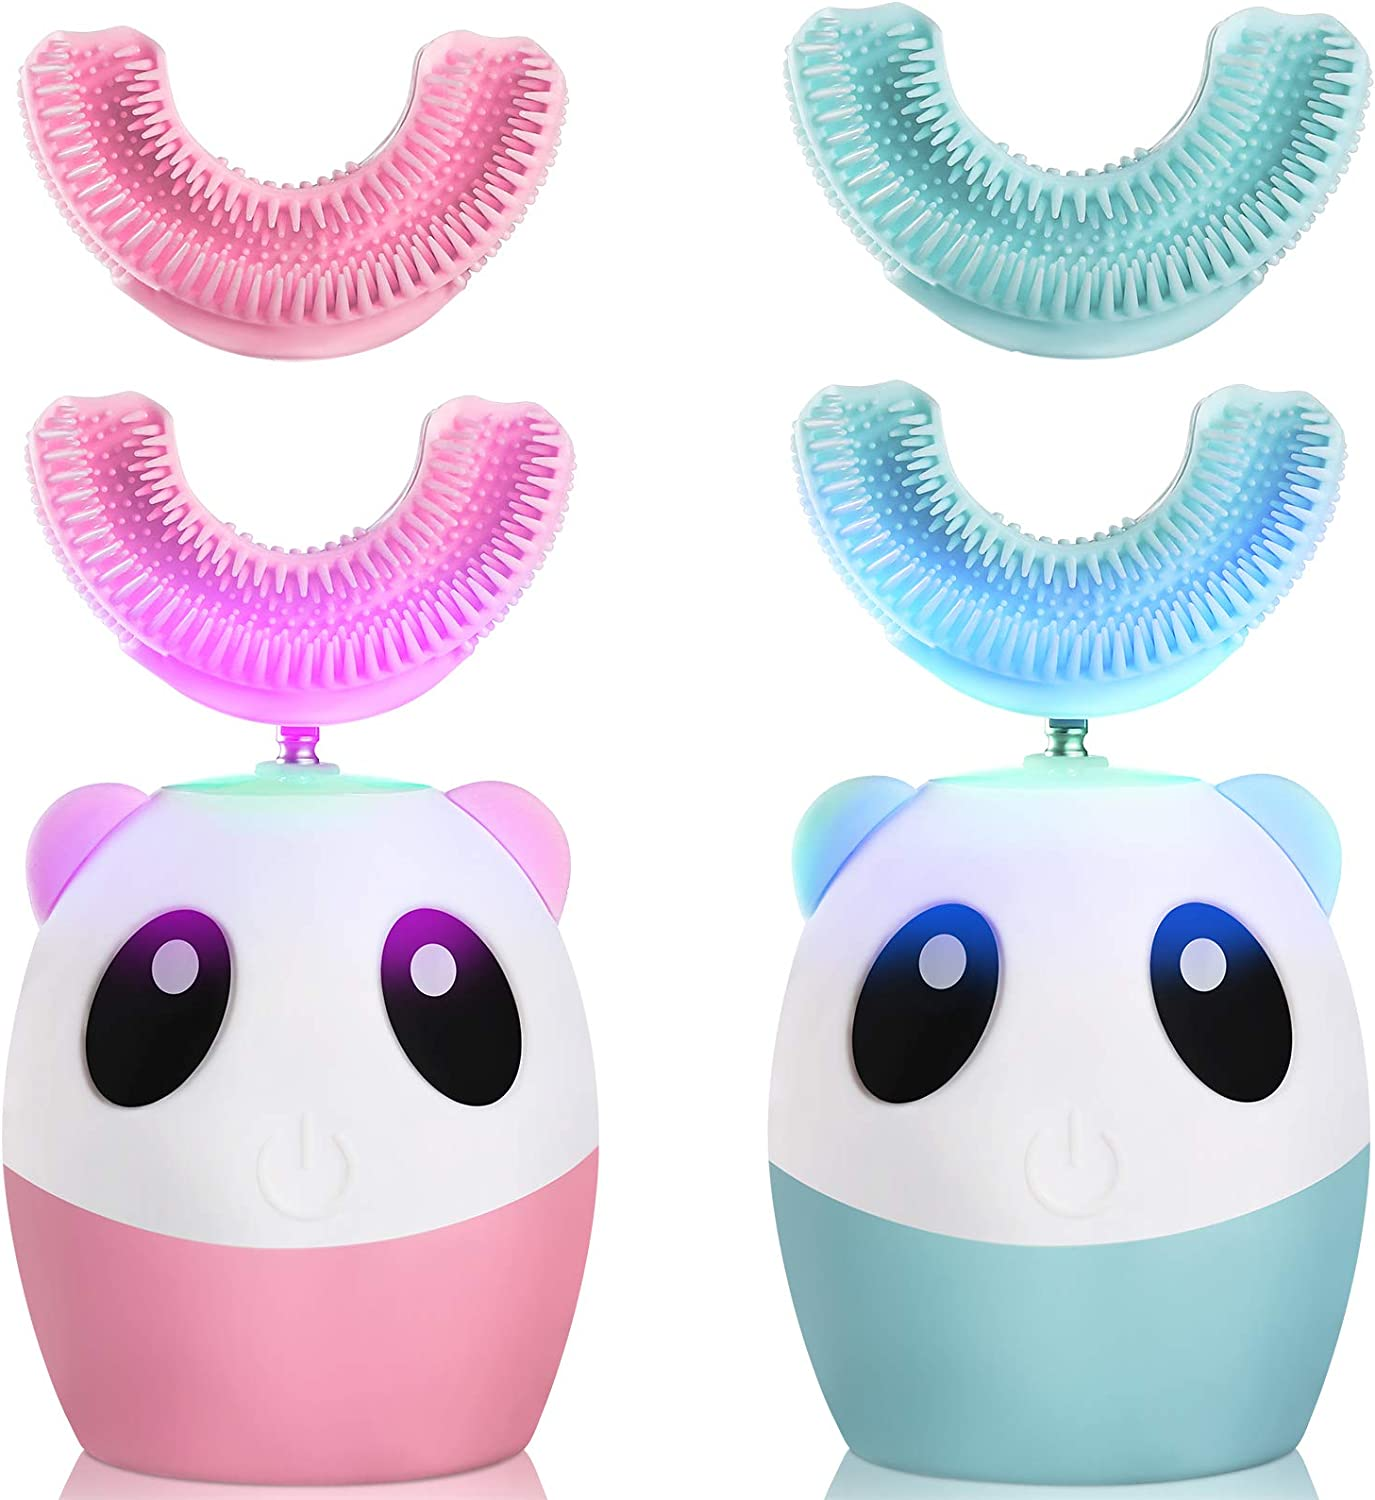 2 Pieces Kids Spasm price U Seattle Mall Shaped Automatic Ultrasonic Toothbrush Electric